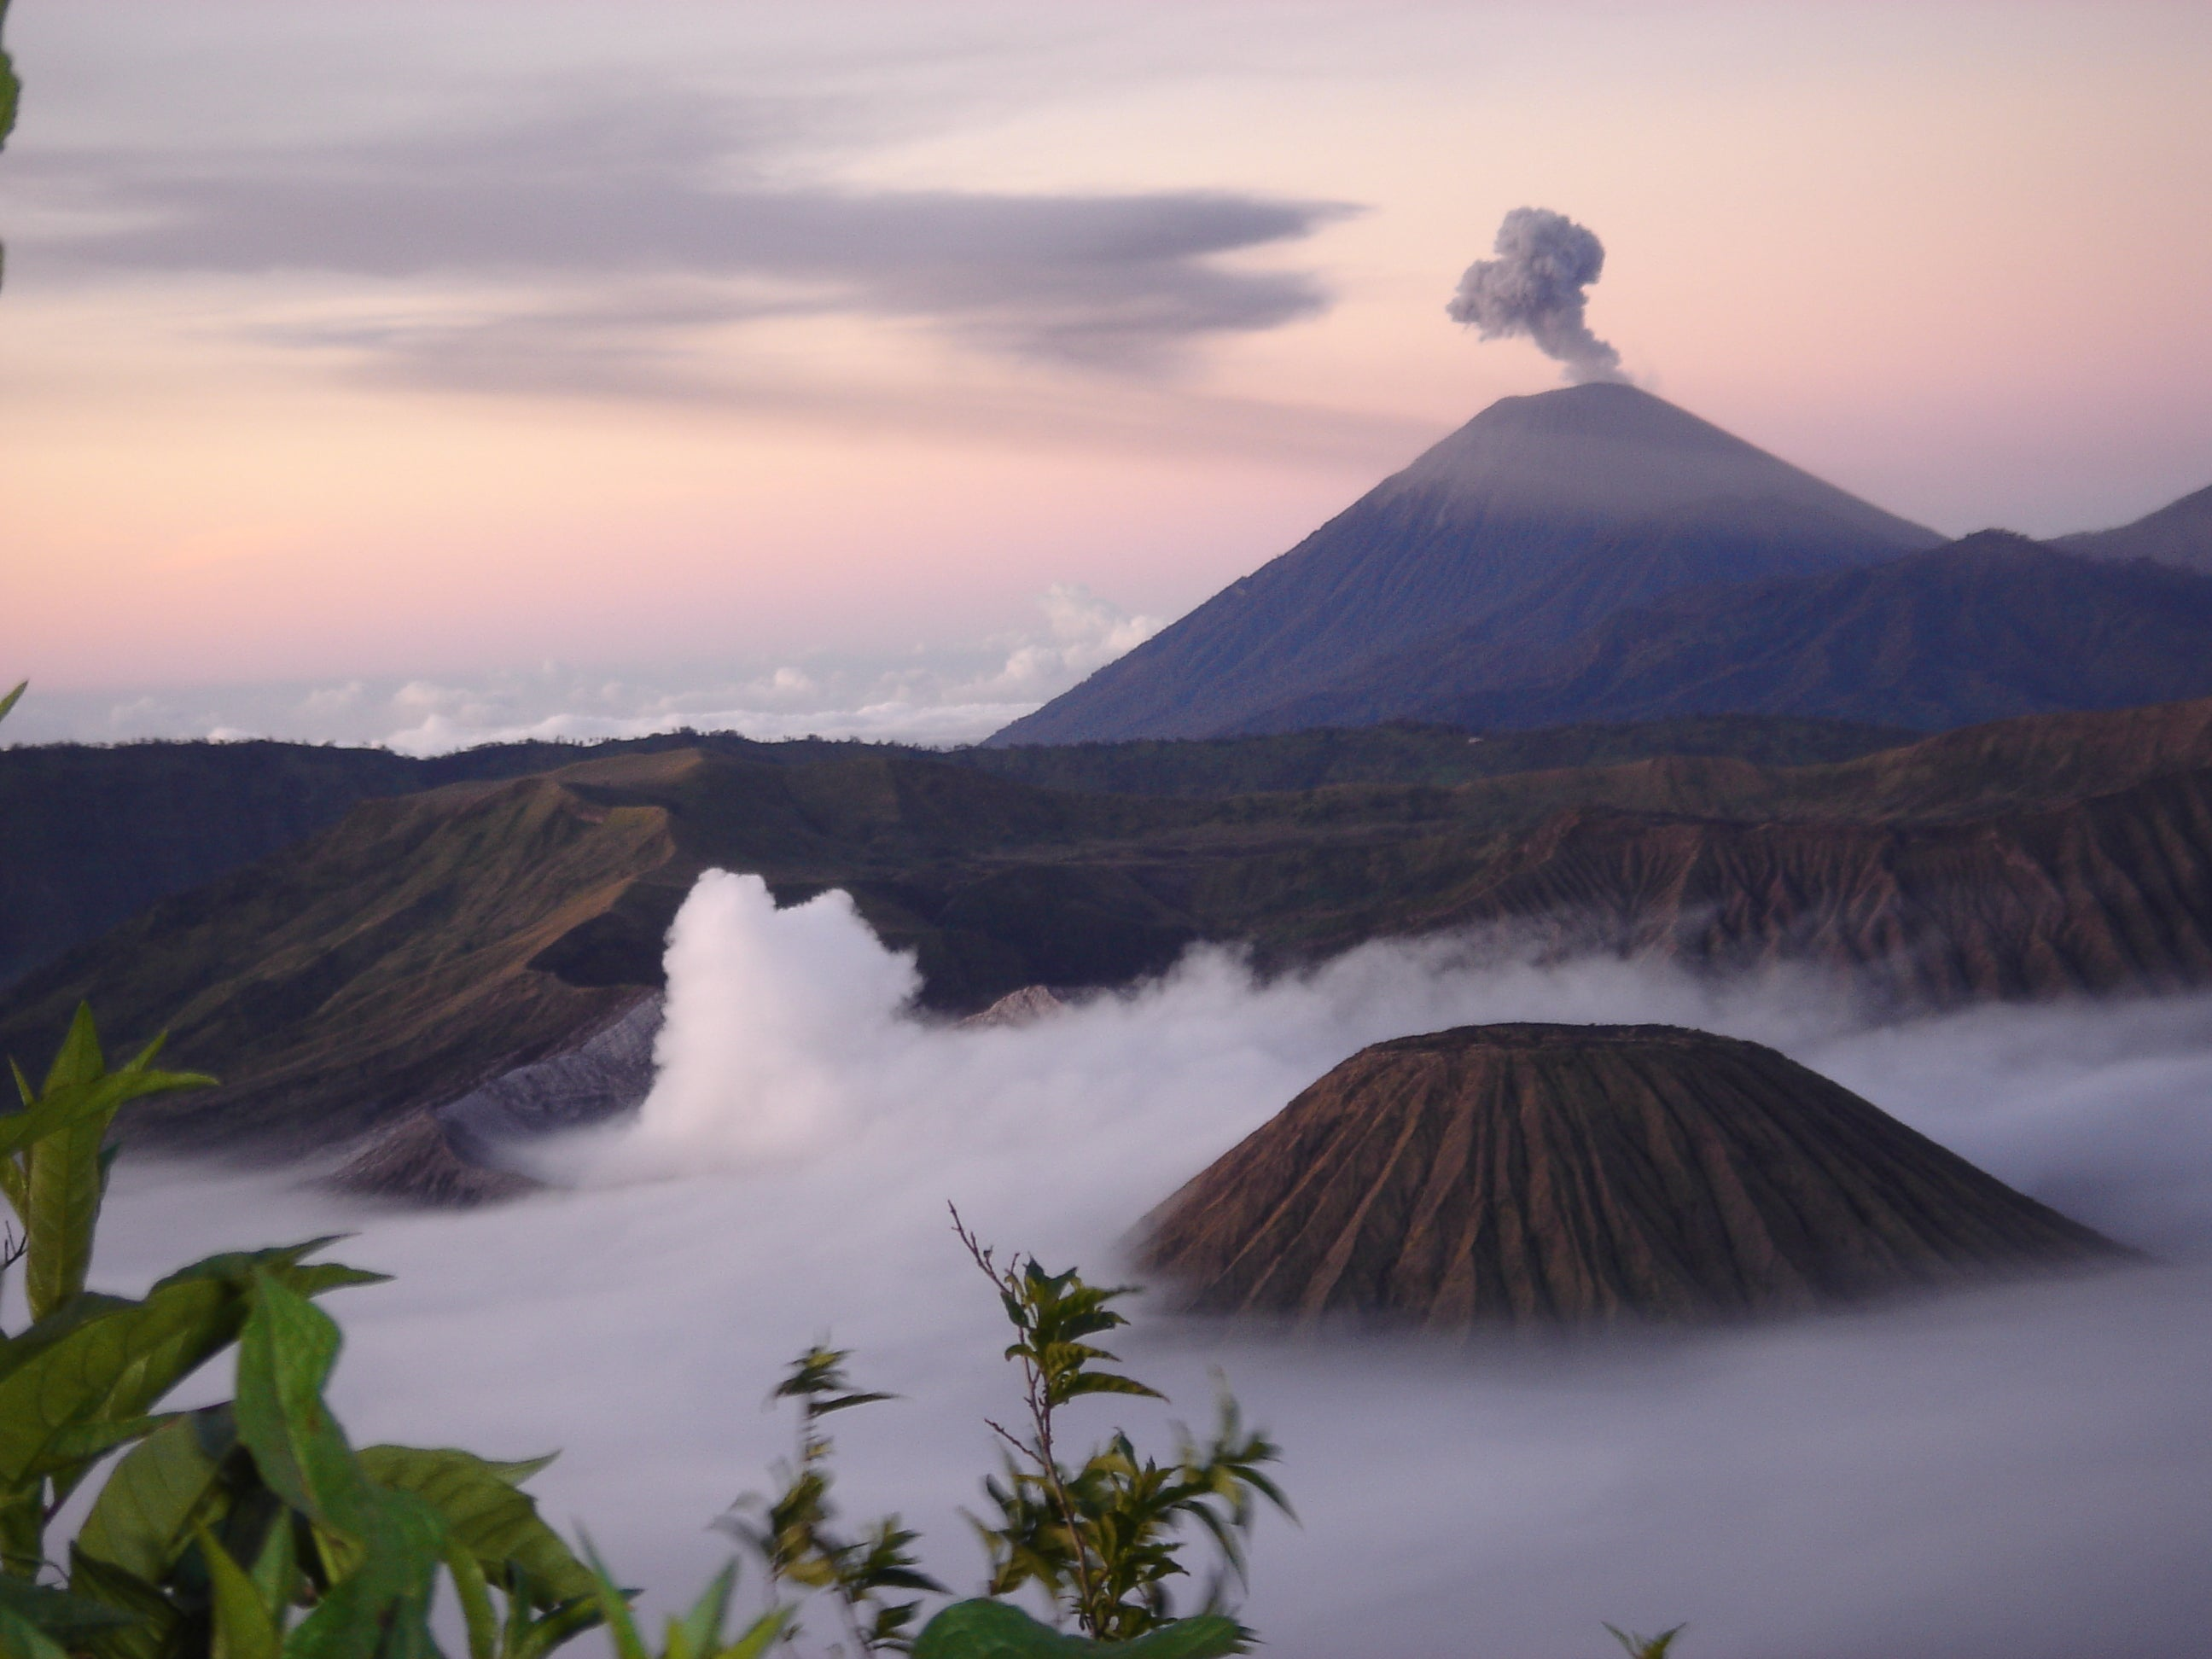 Viewpoint from the Bromo Volcano